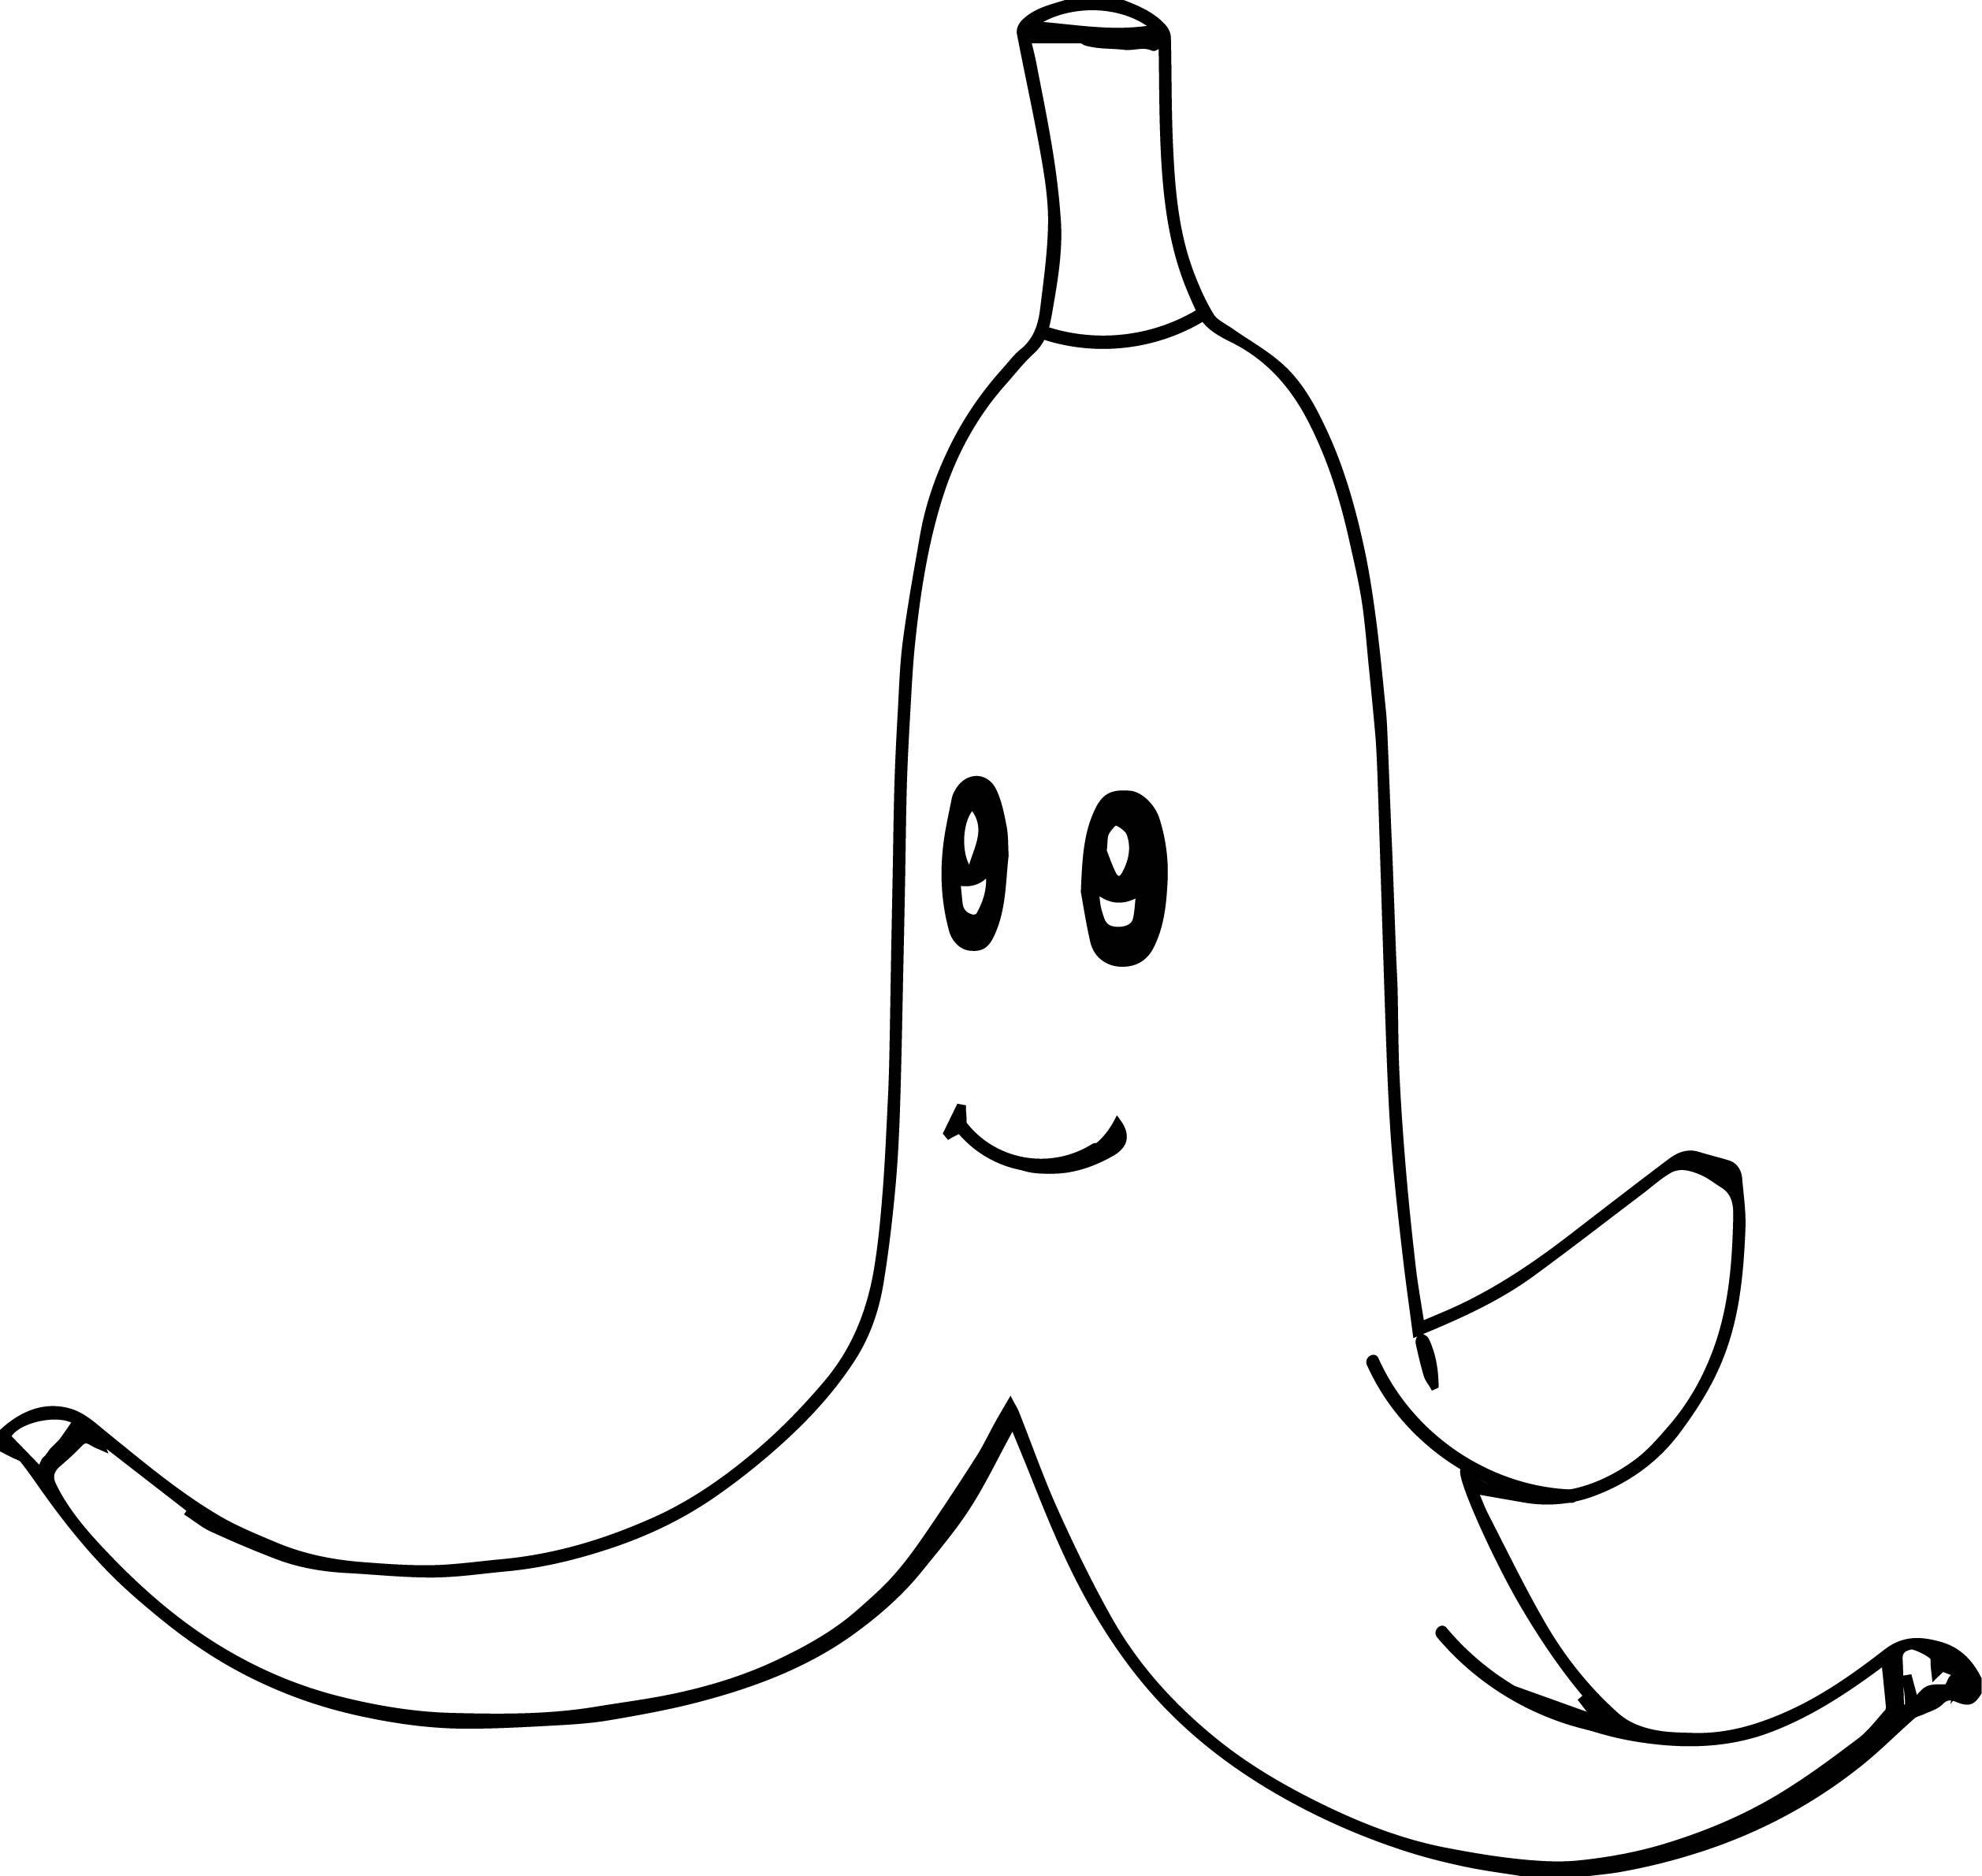 Super Mario Bros Banana Coloring Page